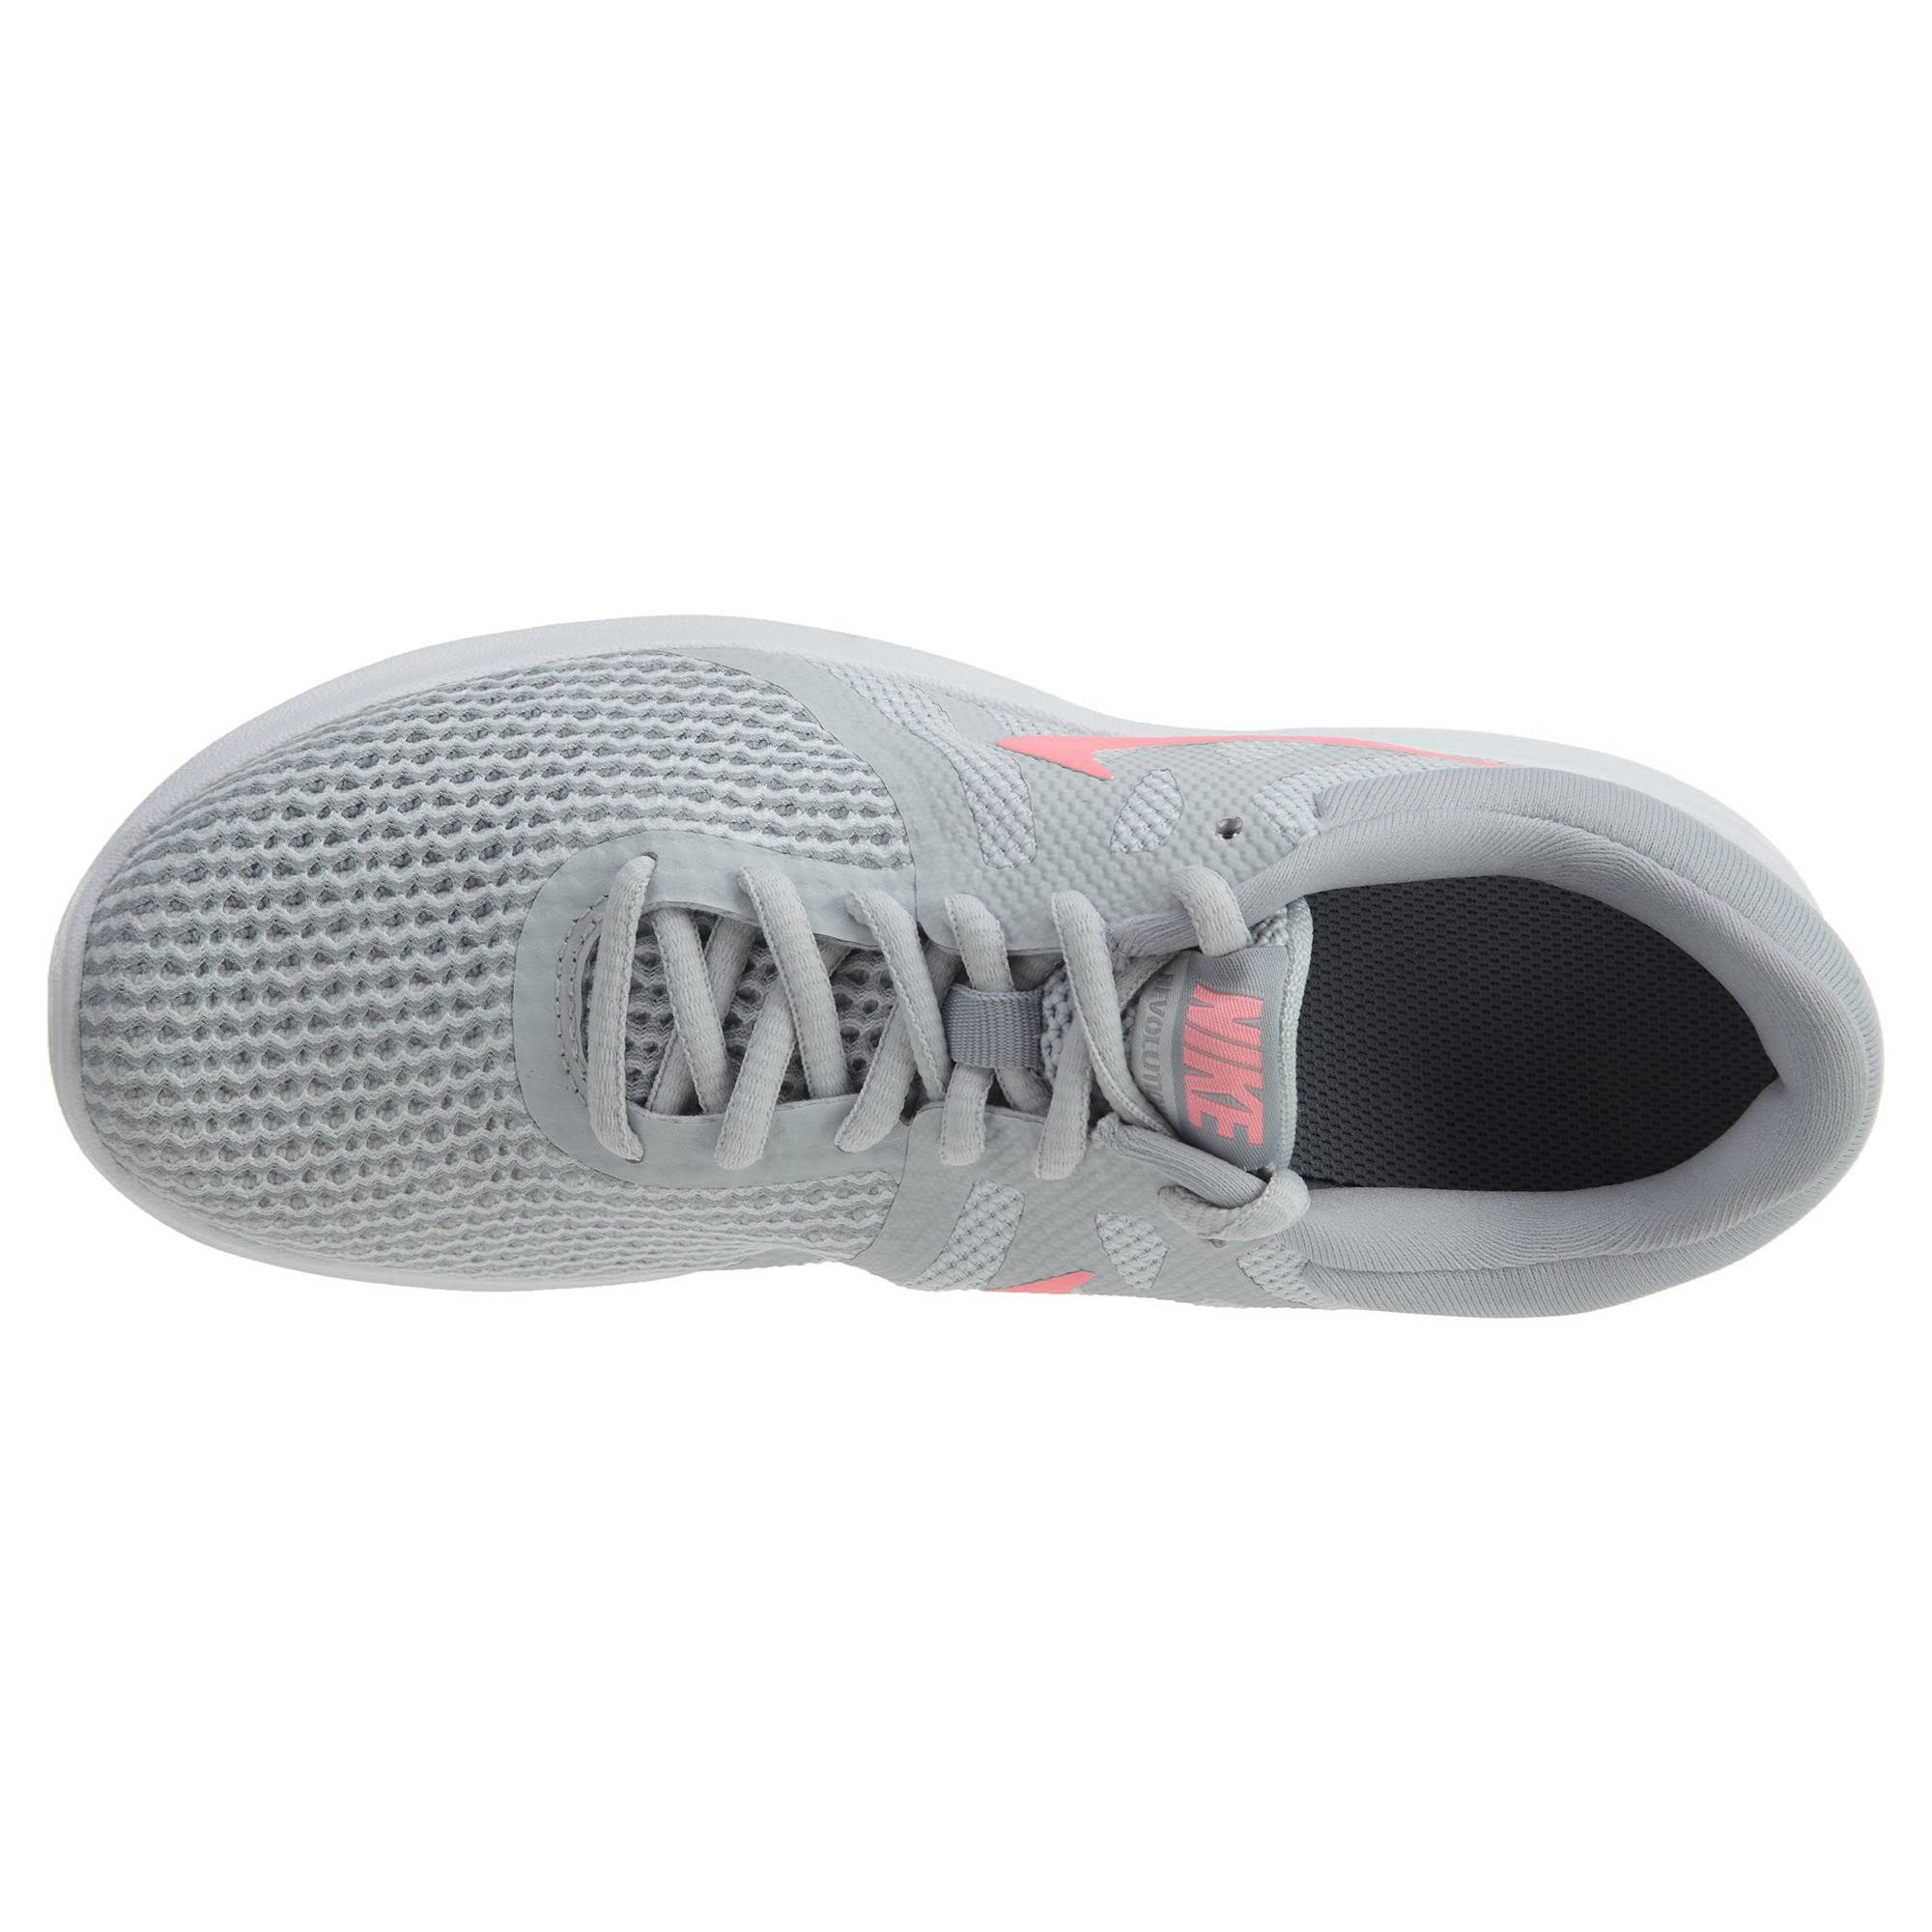 016 908999 Sunset Nike 4 Pure Platinum Revolution Pulse w4qgBzgax